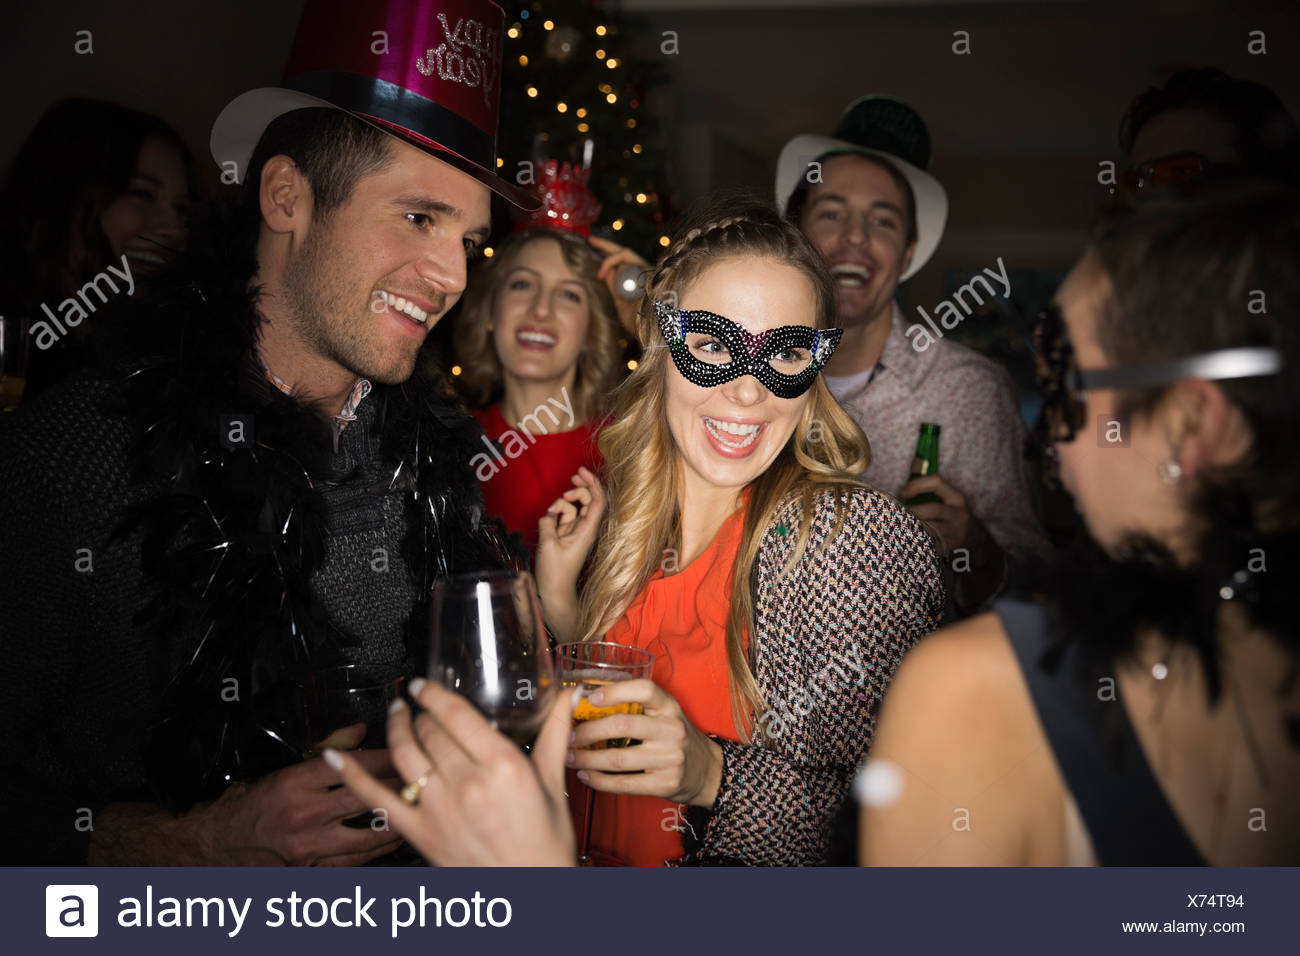 Friends enjoying New Years Eve party - Stock Image